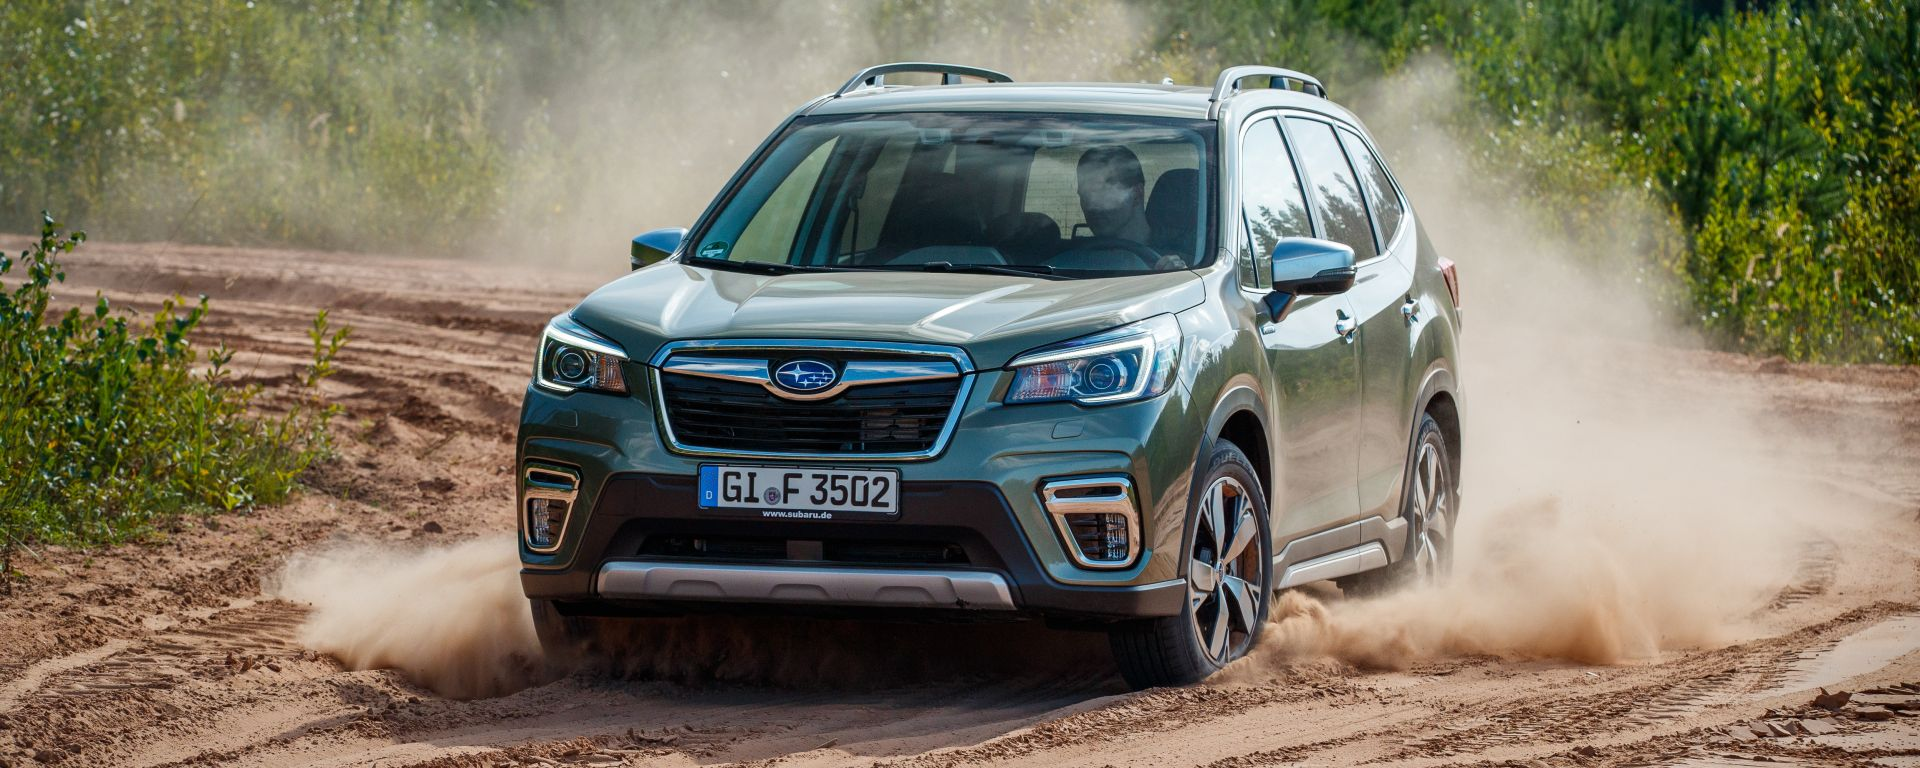 Nuova Subaru Forester e-Boxer, l'ibrida da off-road. Il test